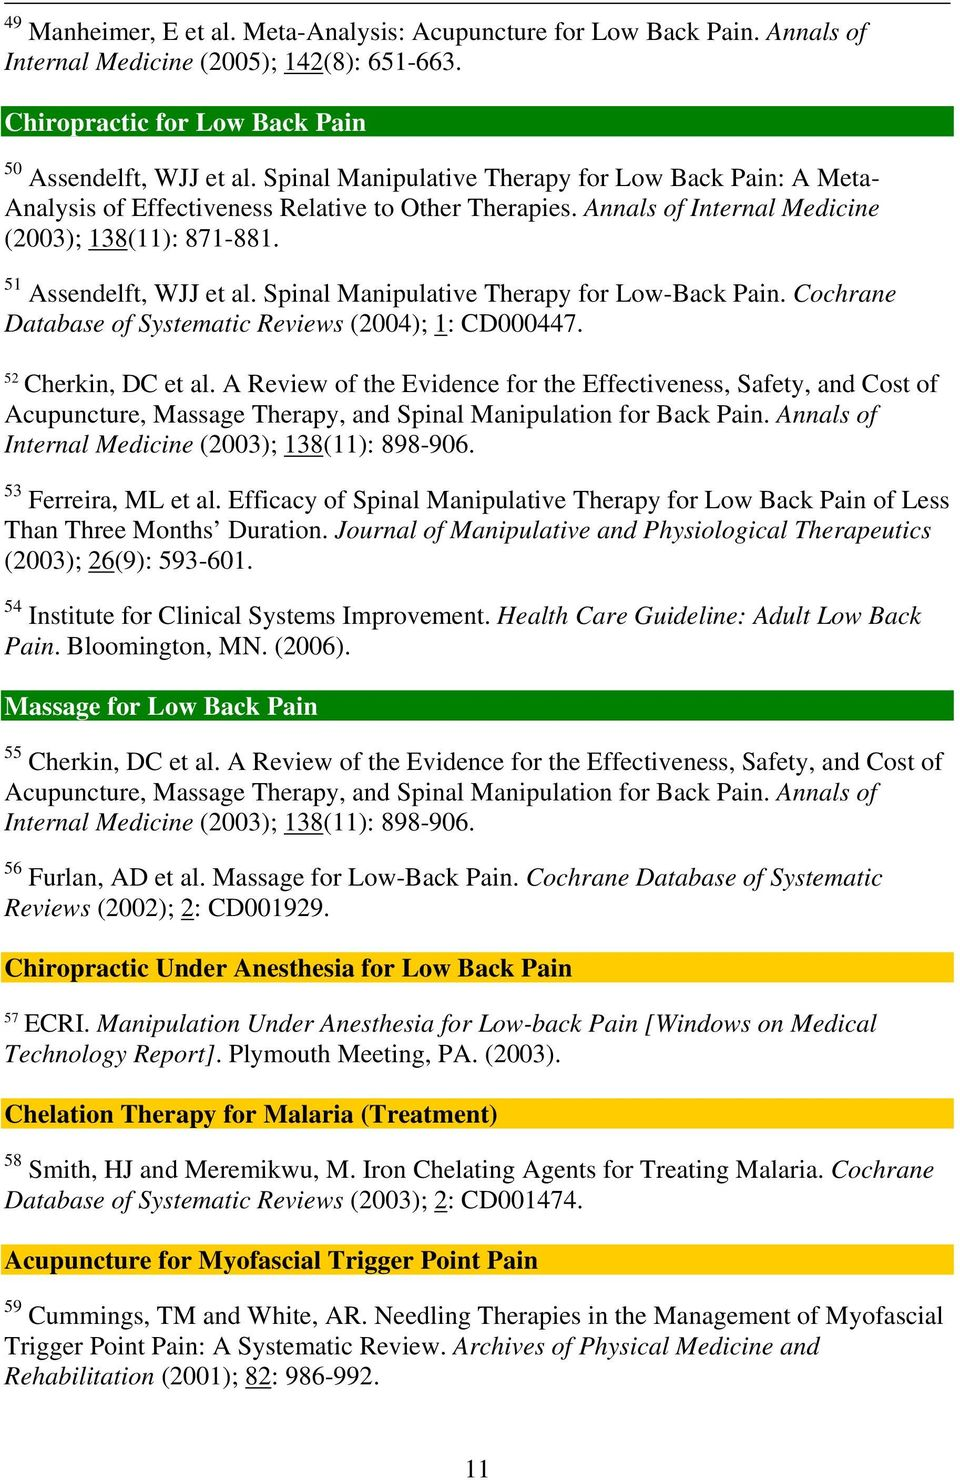 Spinal Manipulative Therapy for Low-Back Pain. Cochrane Database of Systematic Reviews (2004); 1: CD000447. 52 Cherkin, DC et al.